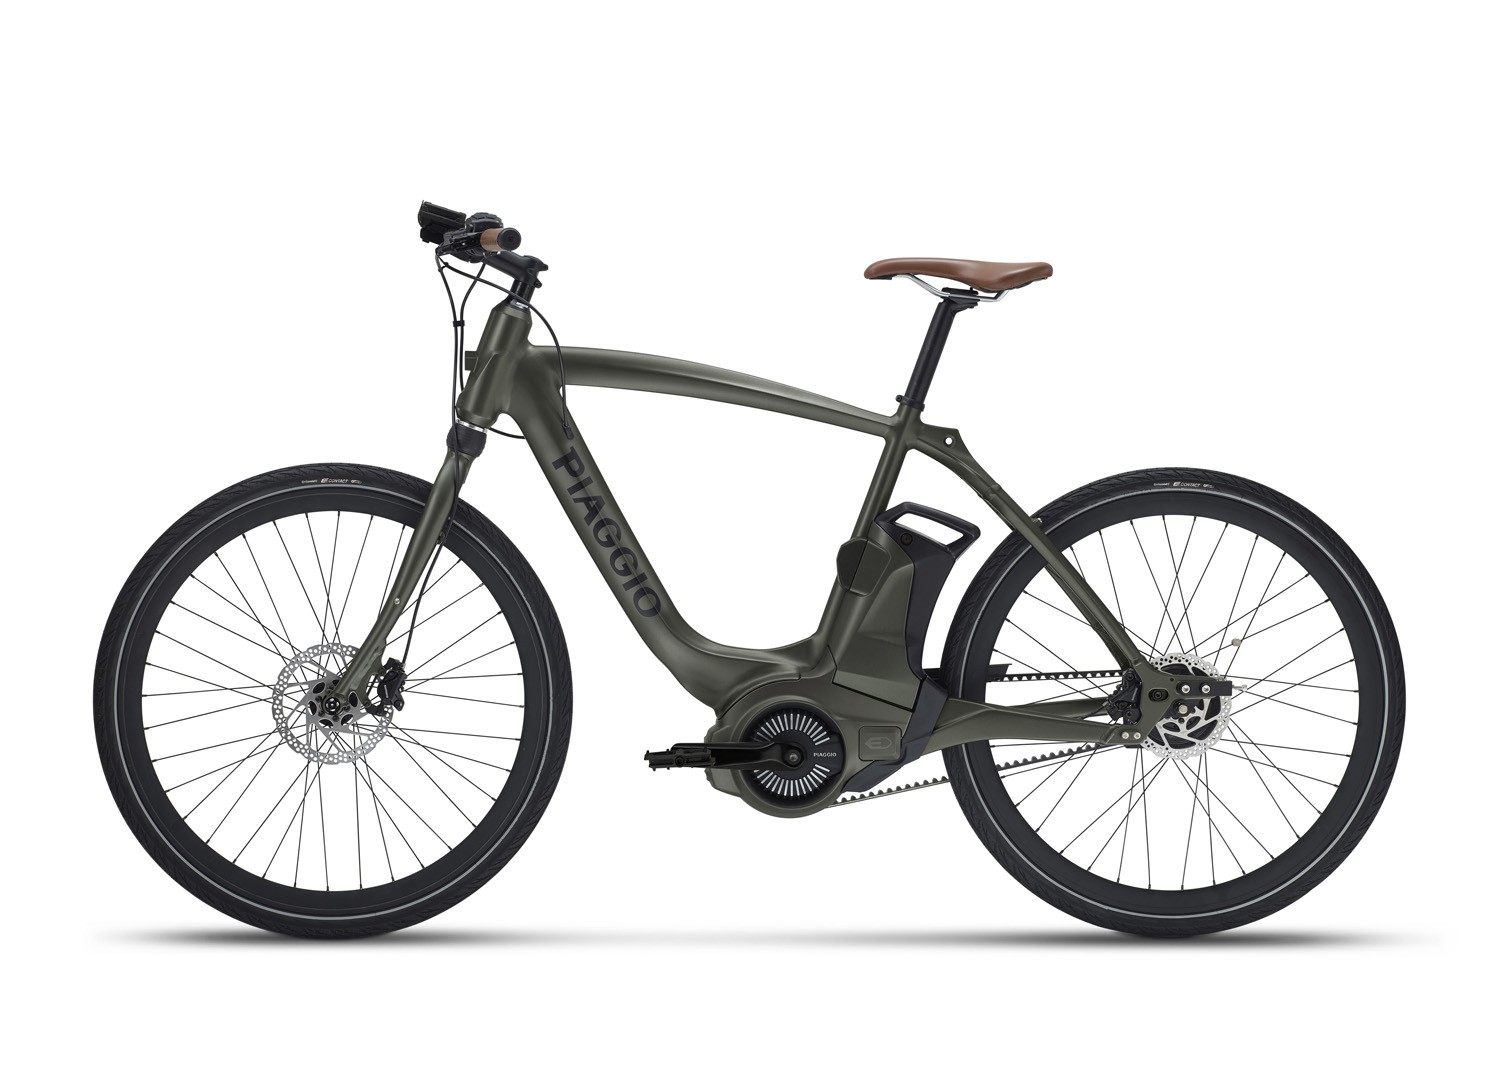 Piaggio Wi Bike Looks As Sharp As It Gets And We Love It